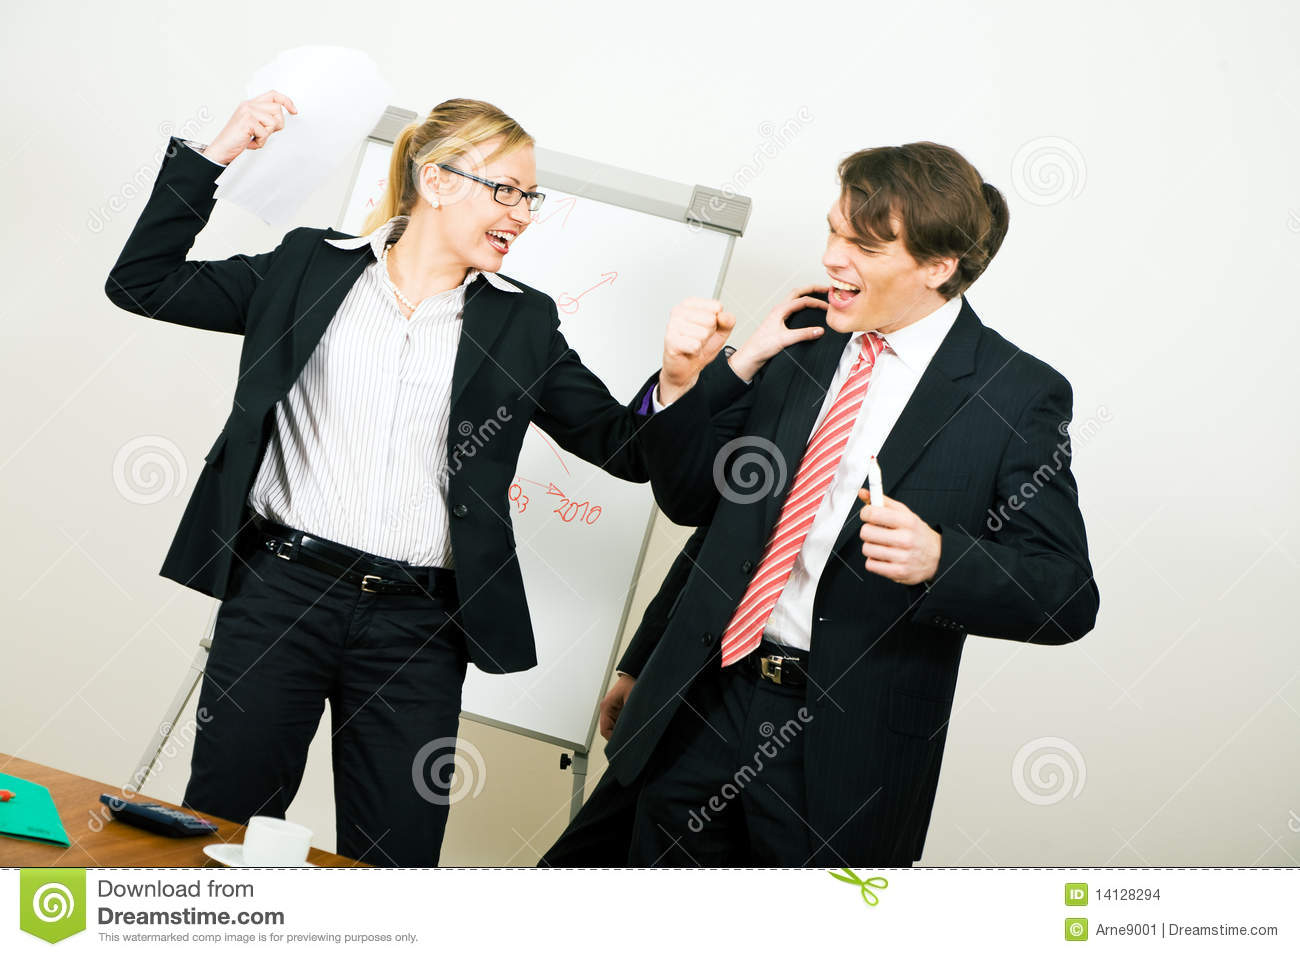 Images of Business Conflict in Teams